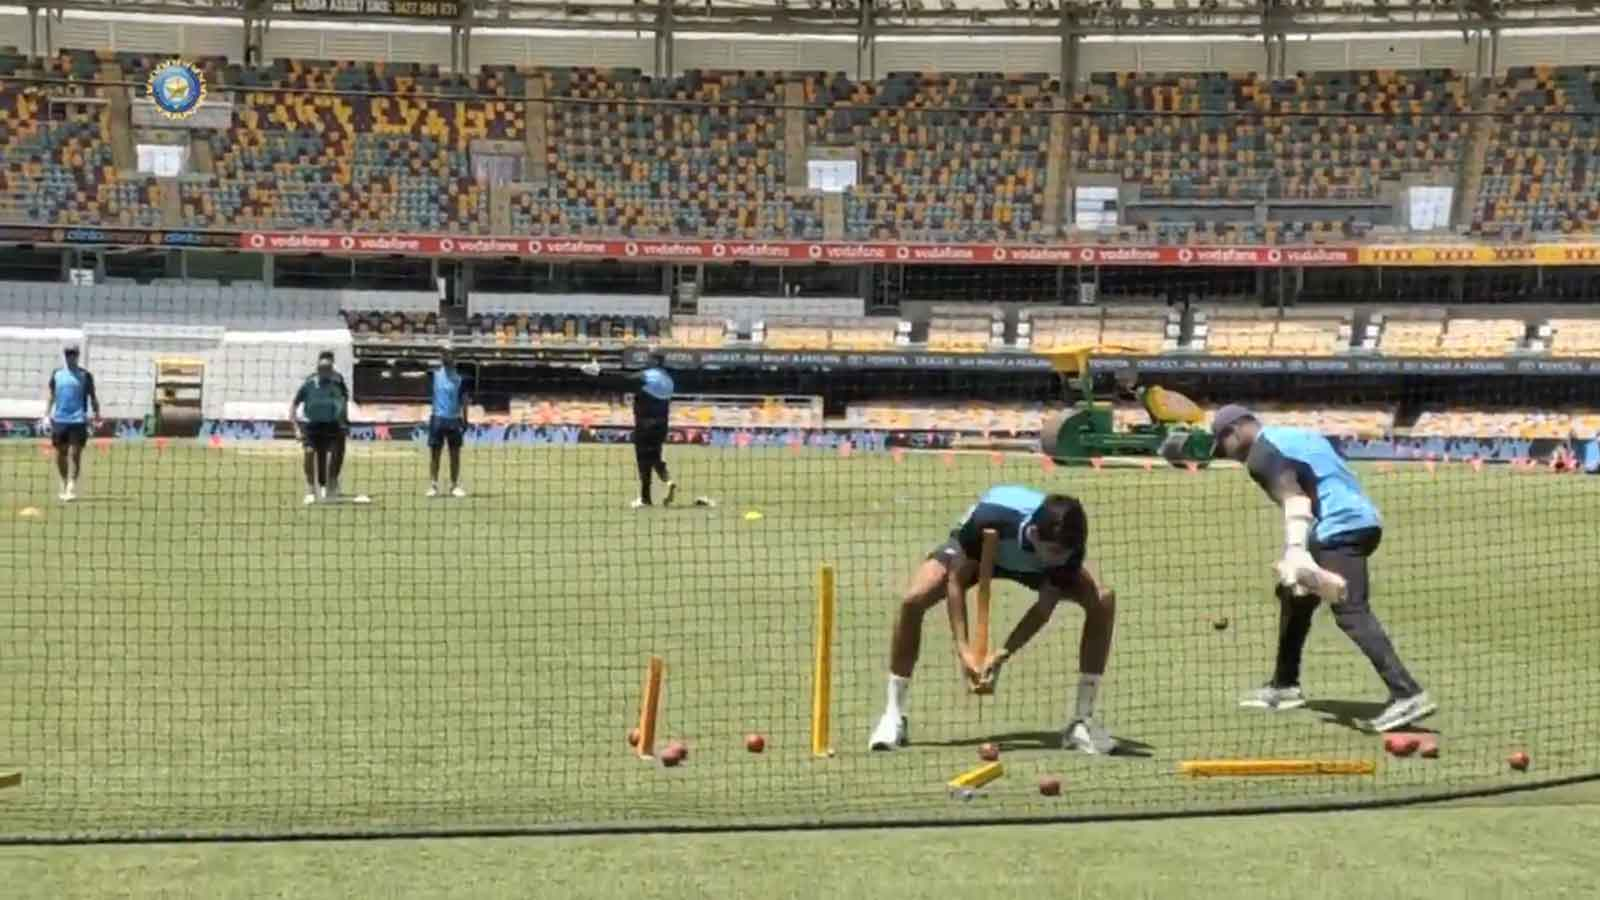 watch-team-indias-unique-fielding-drill-ahead-of-4th-test-against-australia